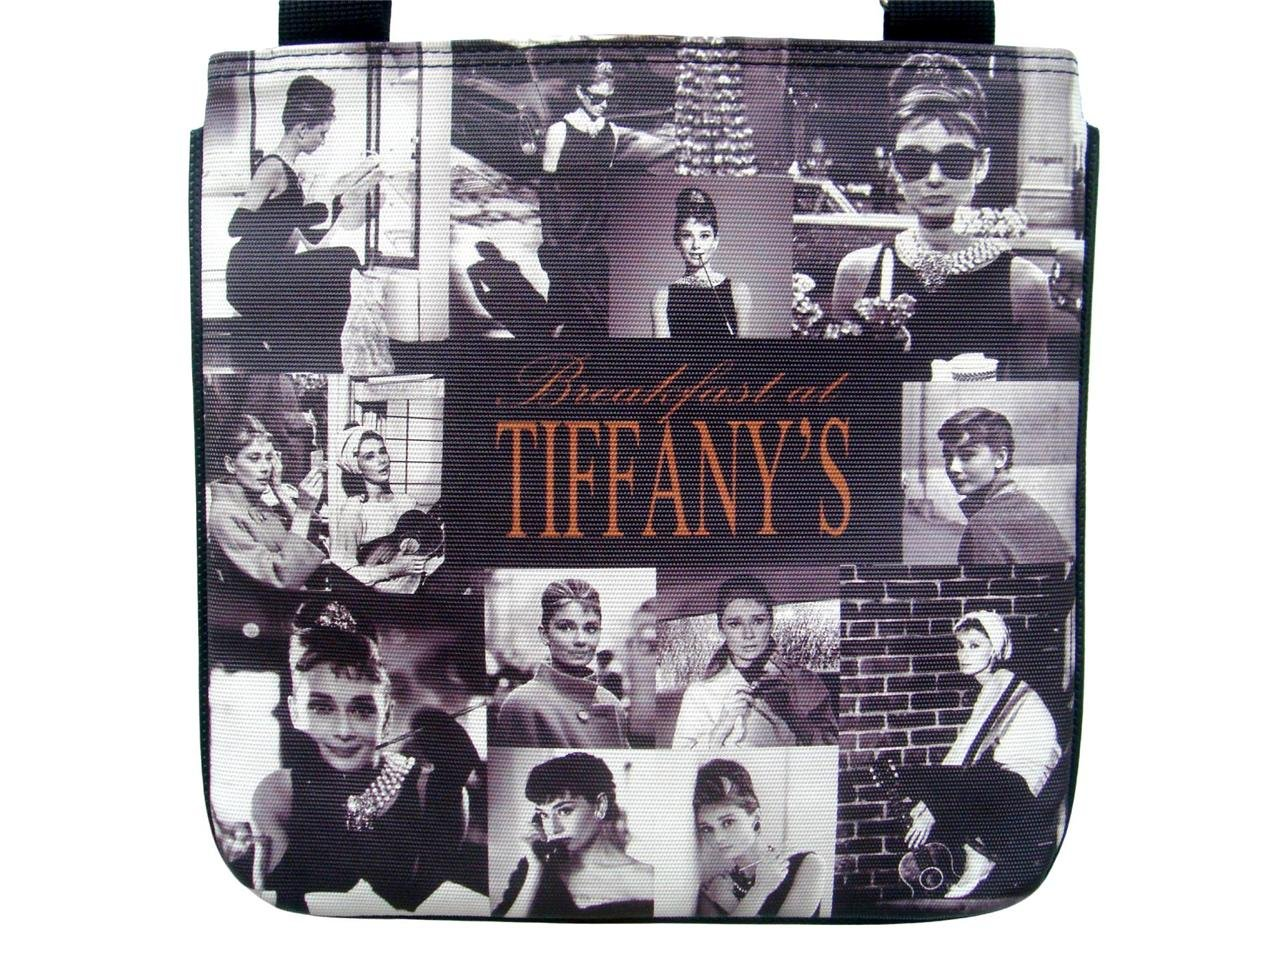 Audrey Hepburn Breakfast at Tiffany's Picture Collage Cross Body Bag Purse